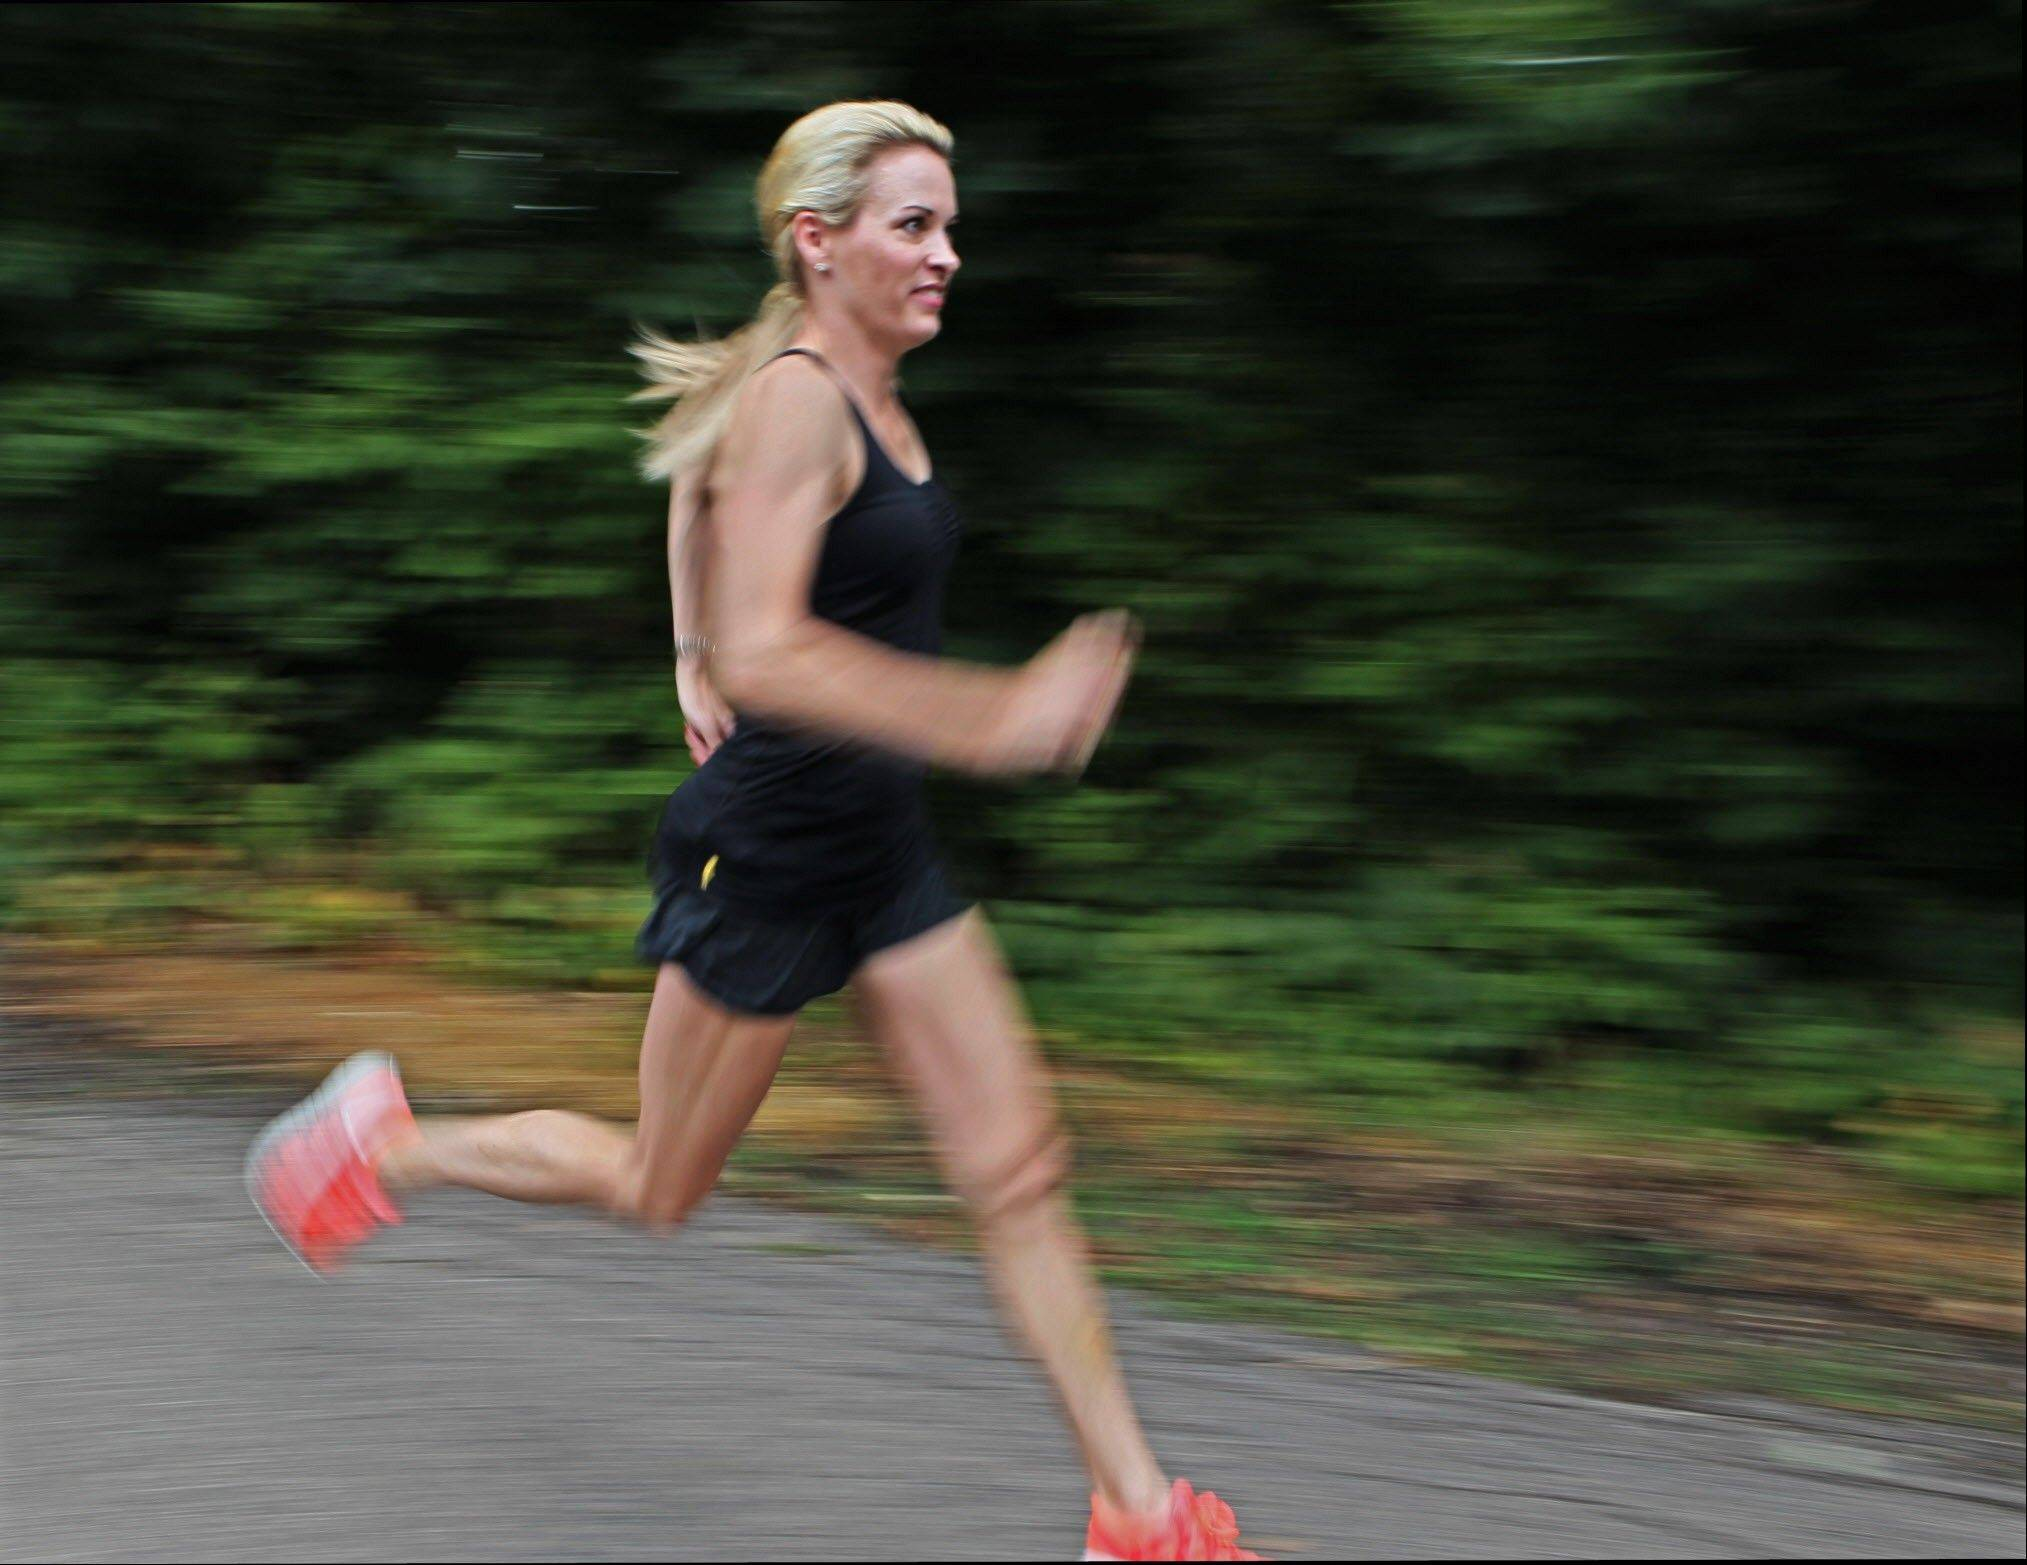 In this photo taken July 19, 2012, Suzy Favor Hamilton runs near her home in Shorewood Hills a suburb of Madison, Wis. The three-time Olympian has admitted leading a double life as an escort. She apologized Thursday after a report by The Smoking Gun website said she had been working as a prostitute in Las Vegas.